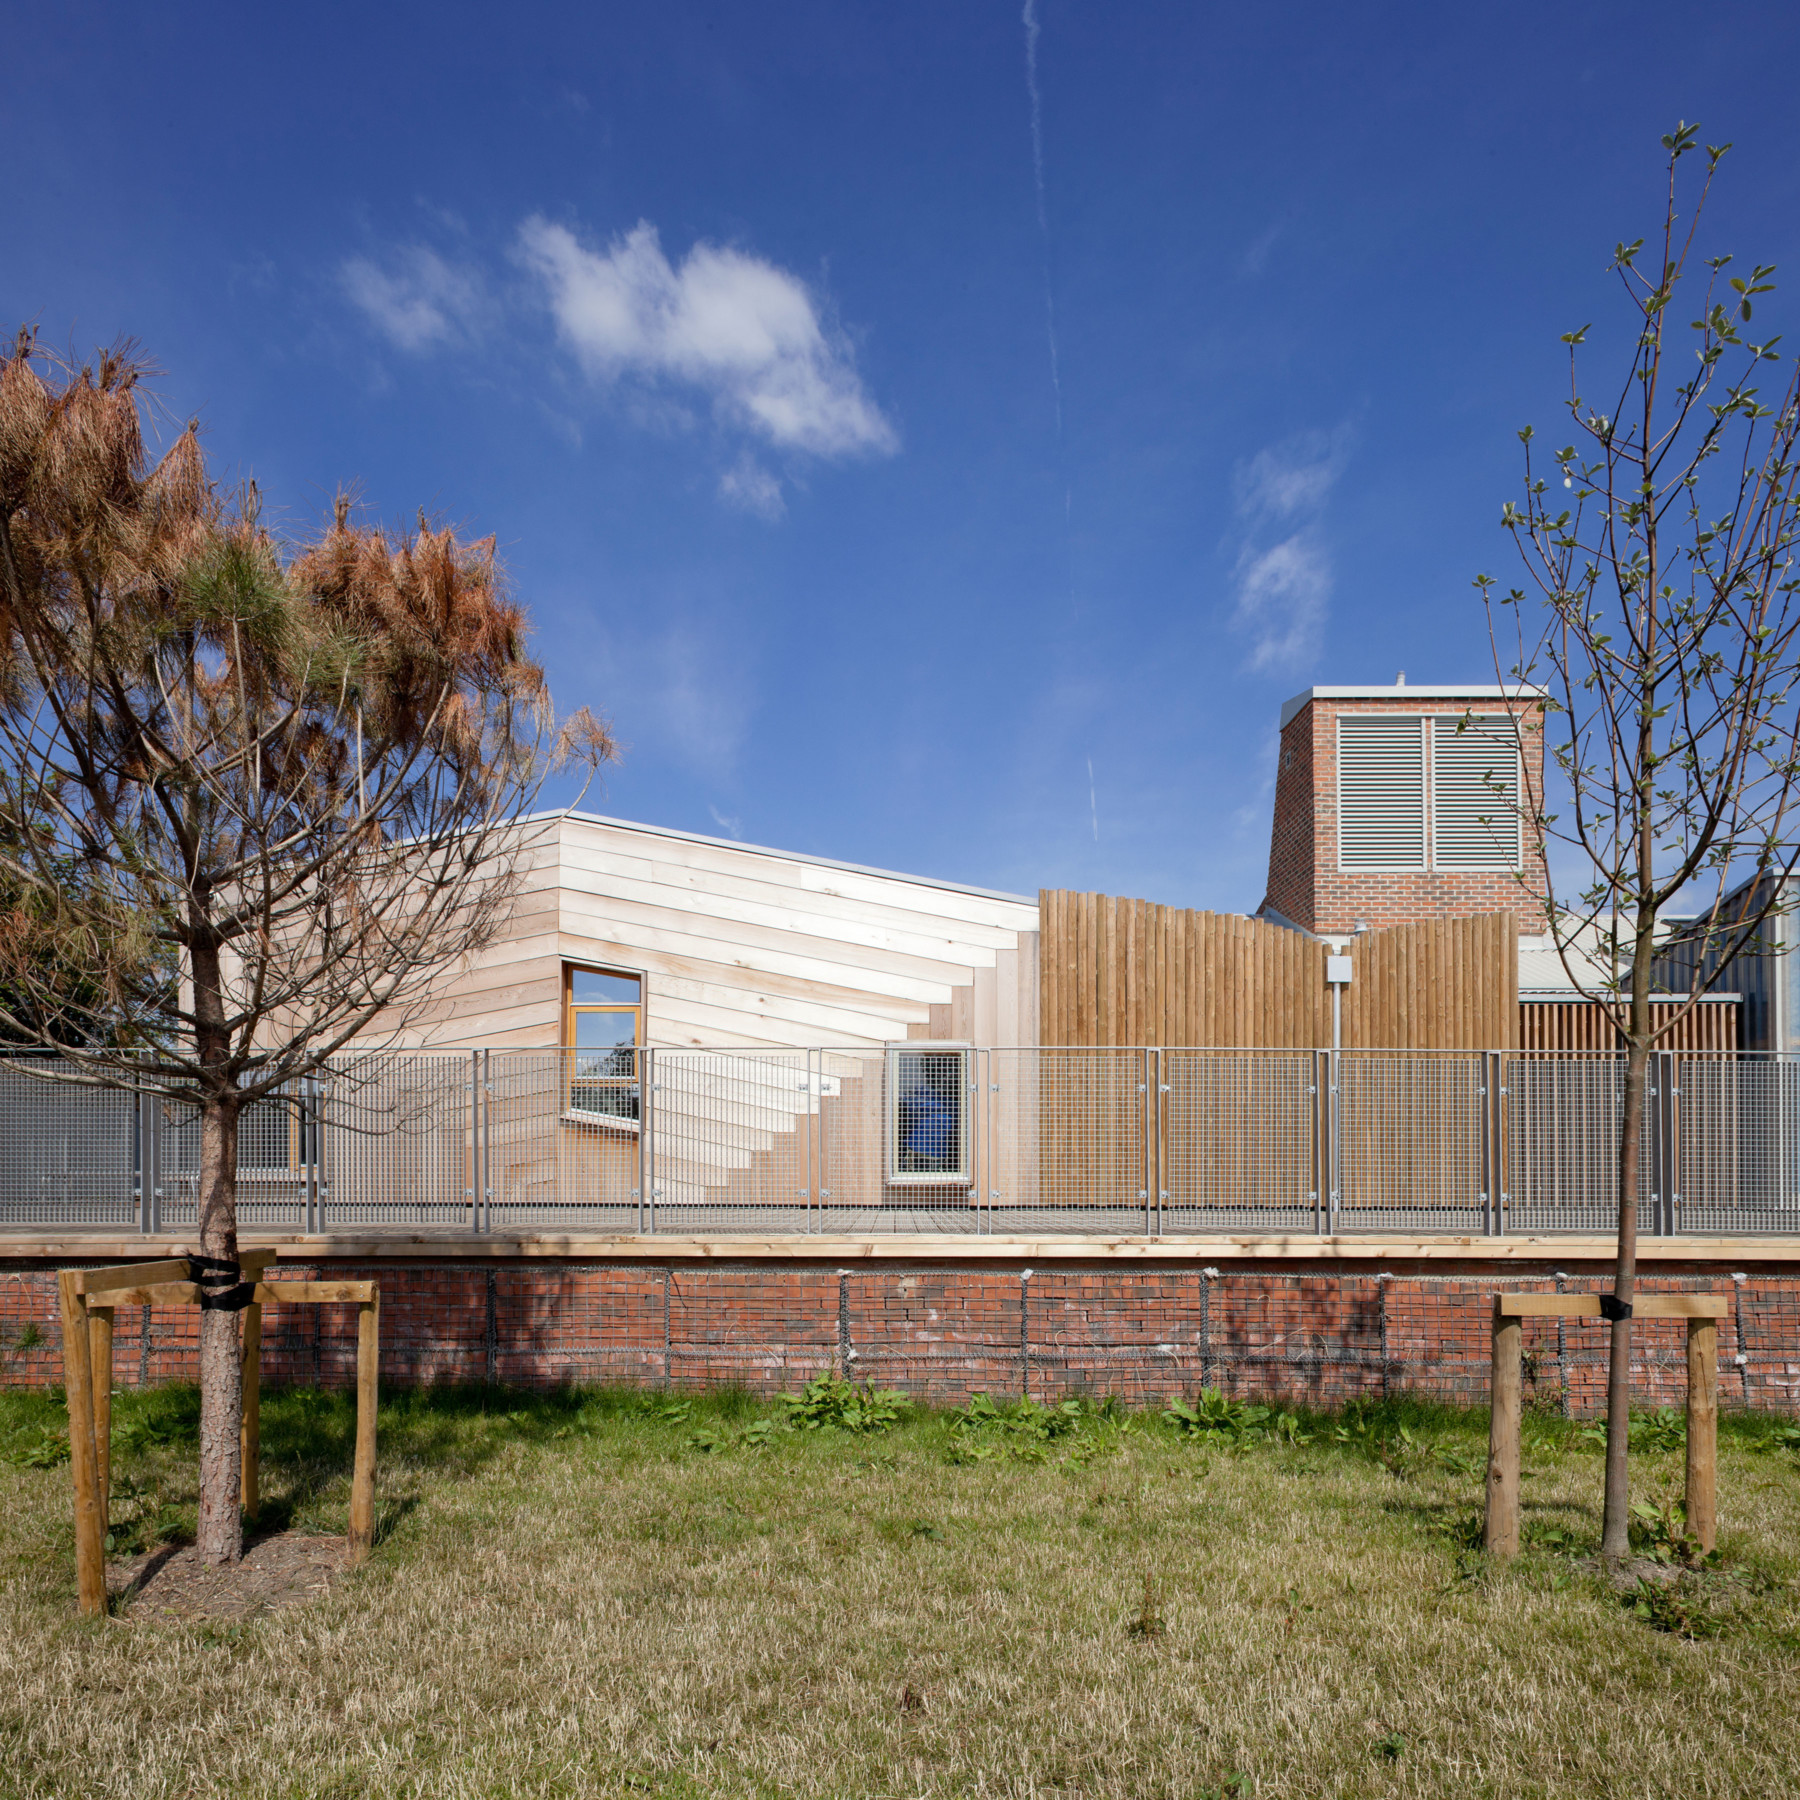 Sarah-Wigglesworth-Architects Sandal-Magna timber 3600